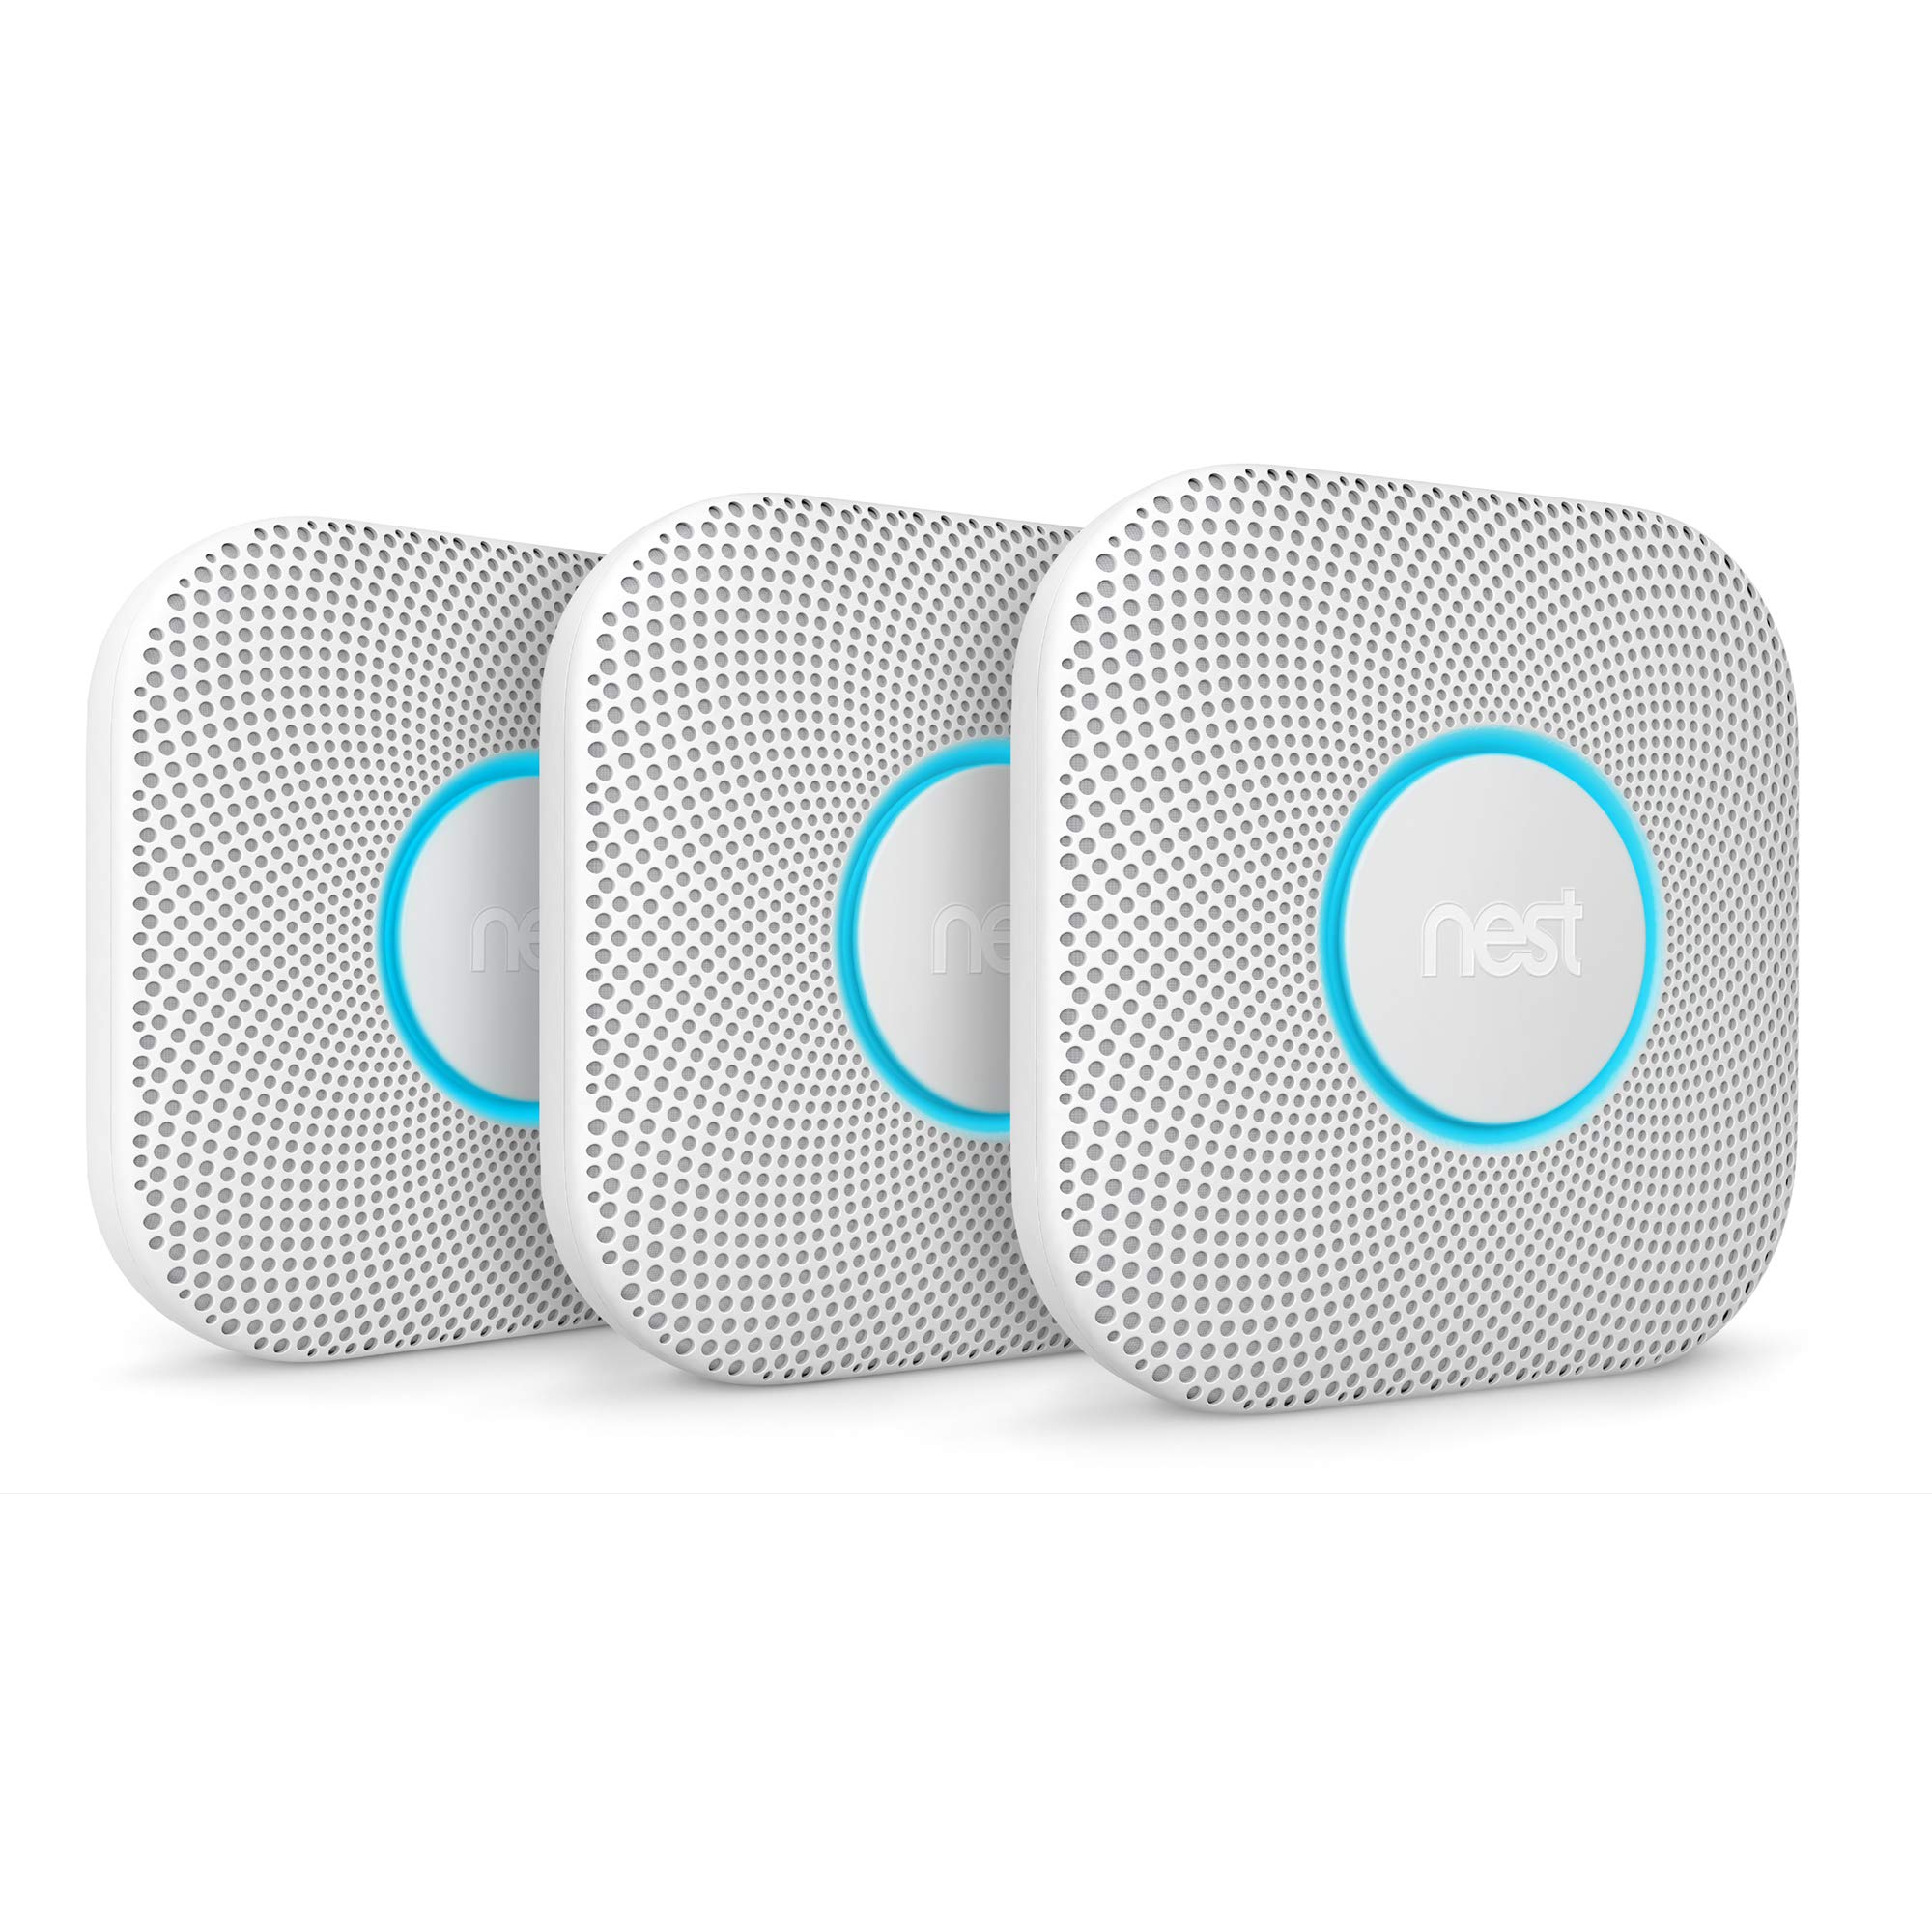 Nest S3000BWES Nest Protect 2nd Gen Smoke + Carbon Monoxide Alarm, Battery (Battery) by NESTC